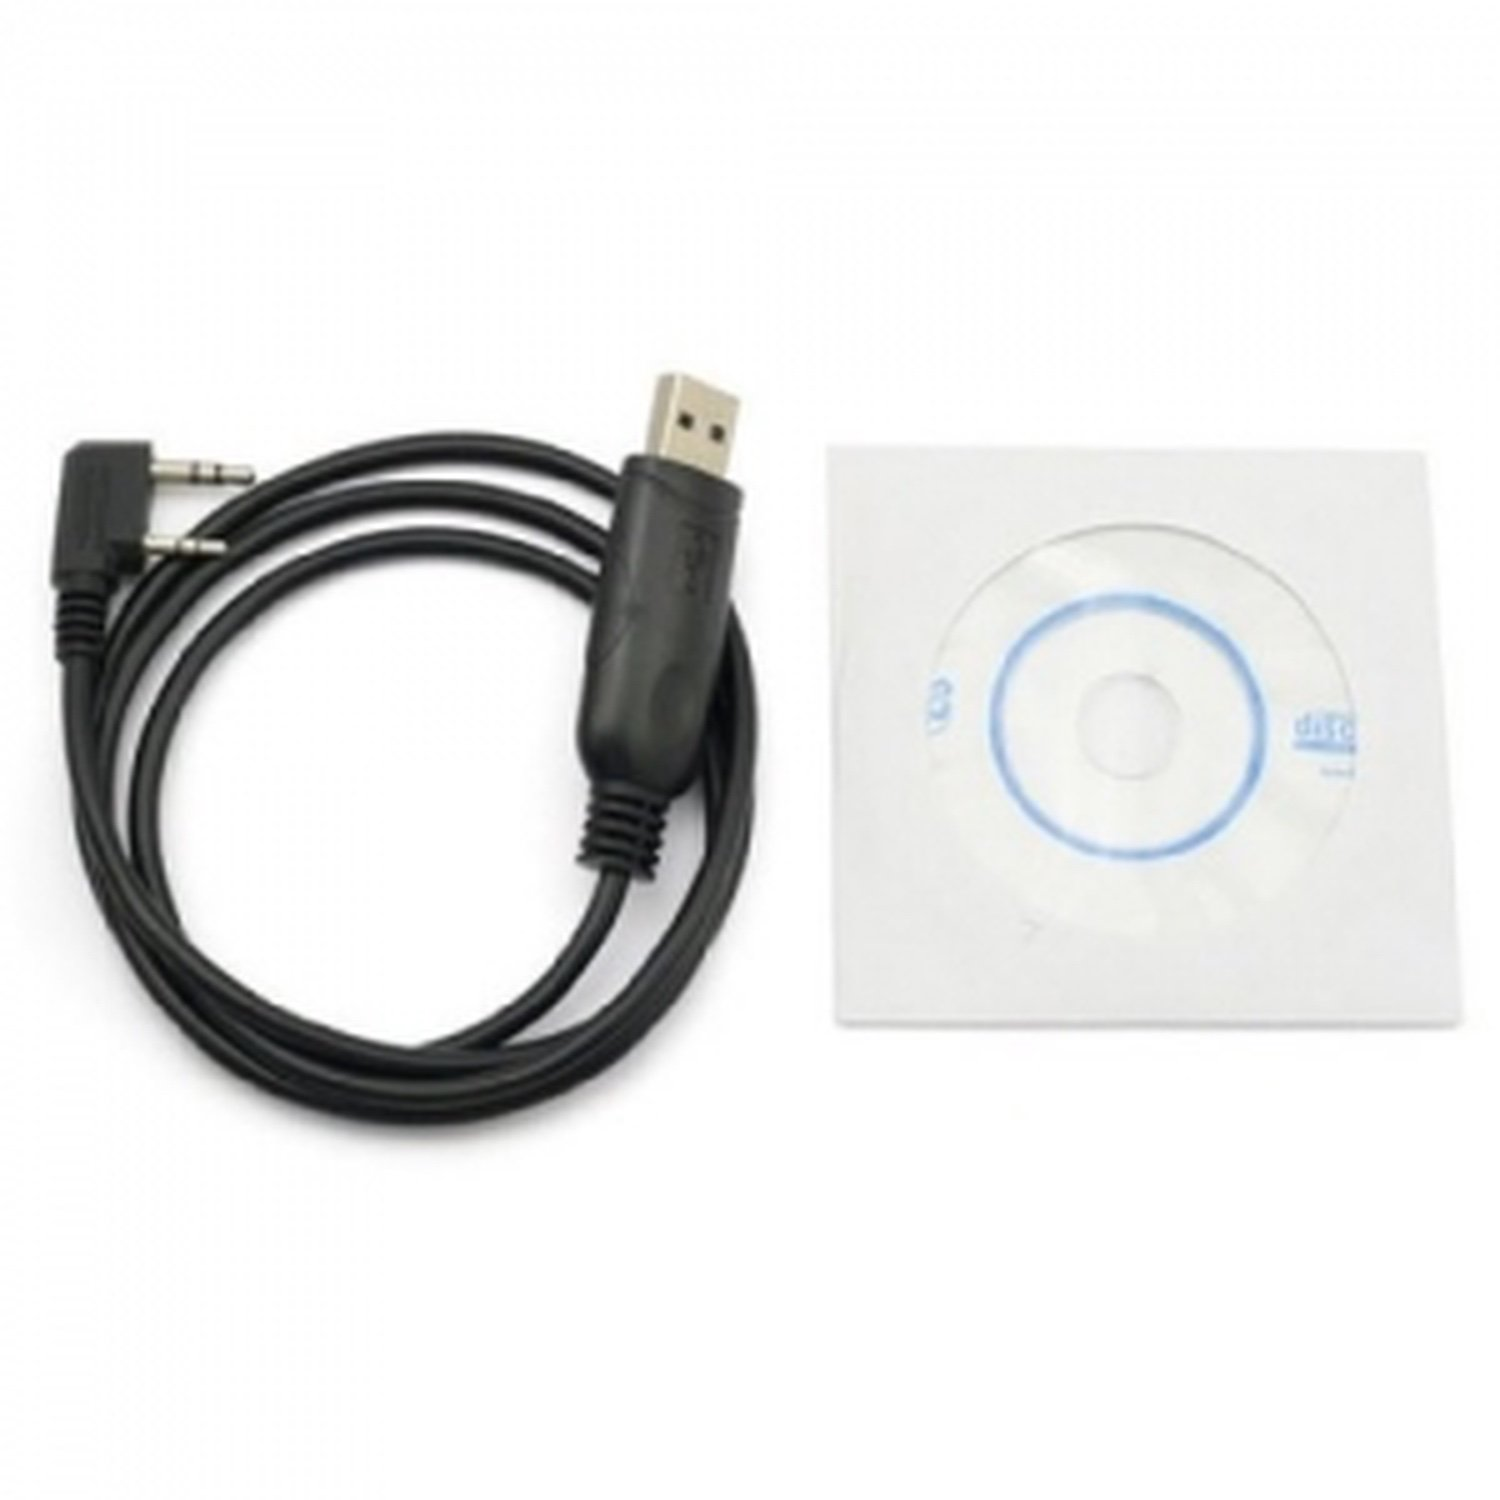 USB Cord + CD Programming For Station WALKIE TALKIE Baofeng